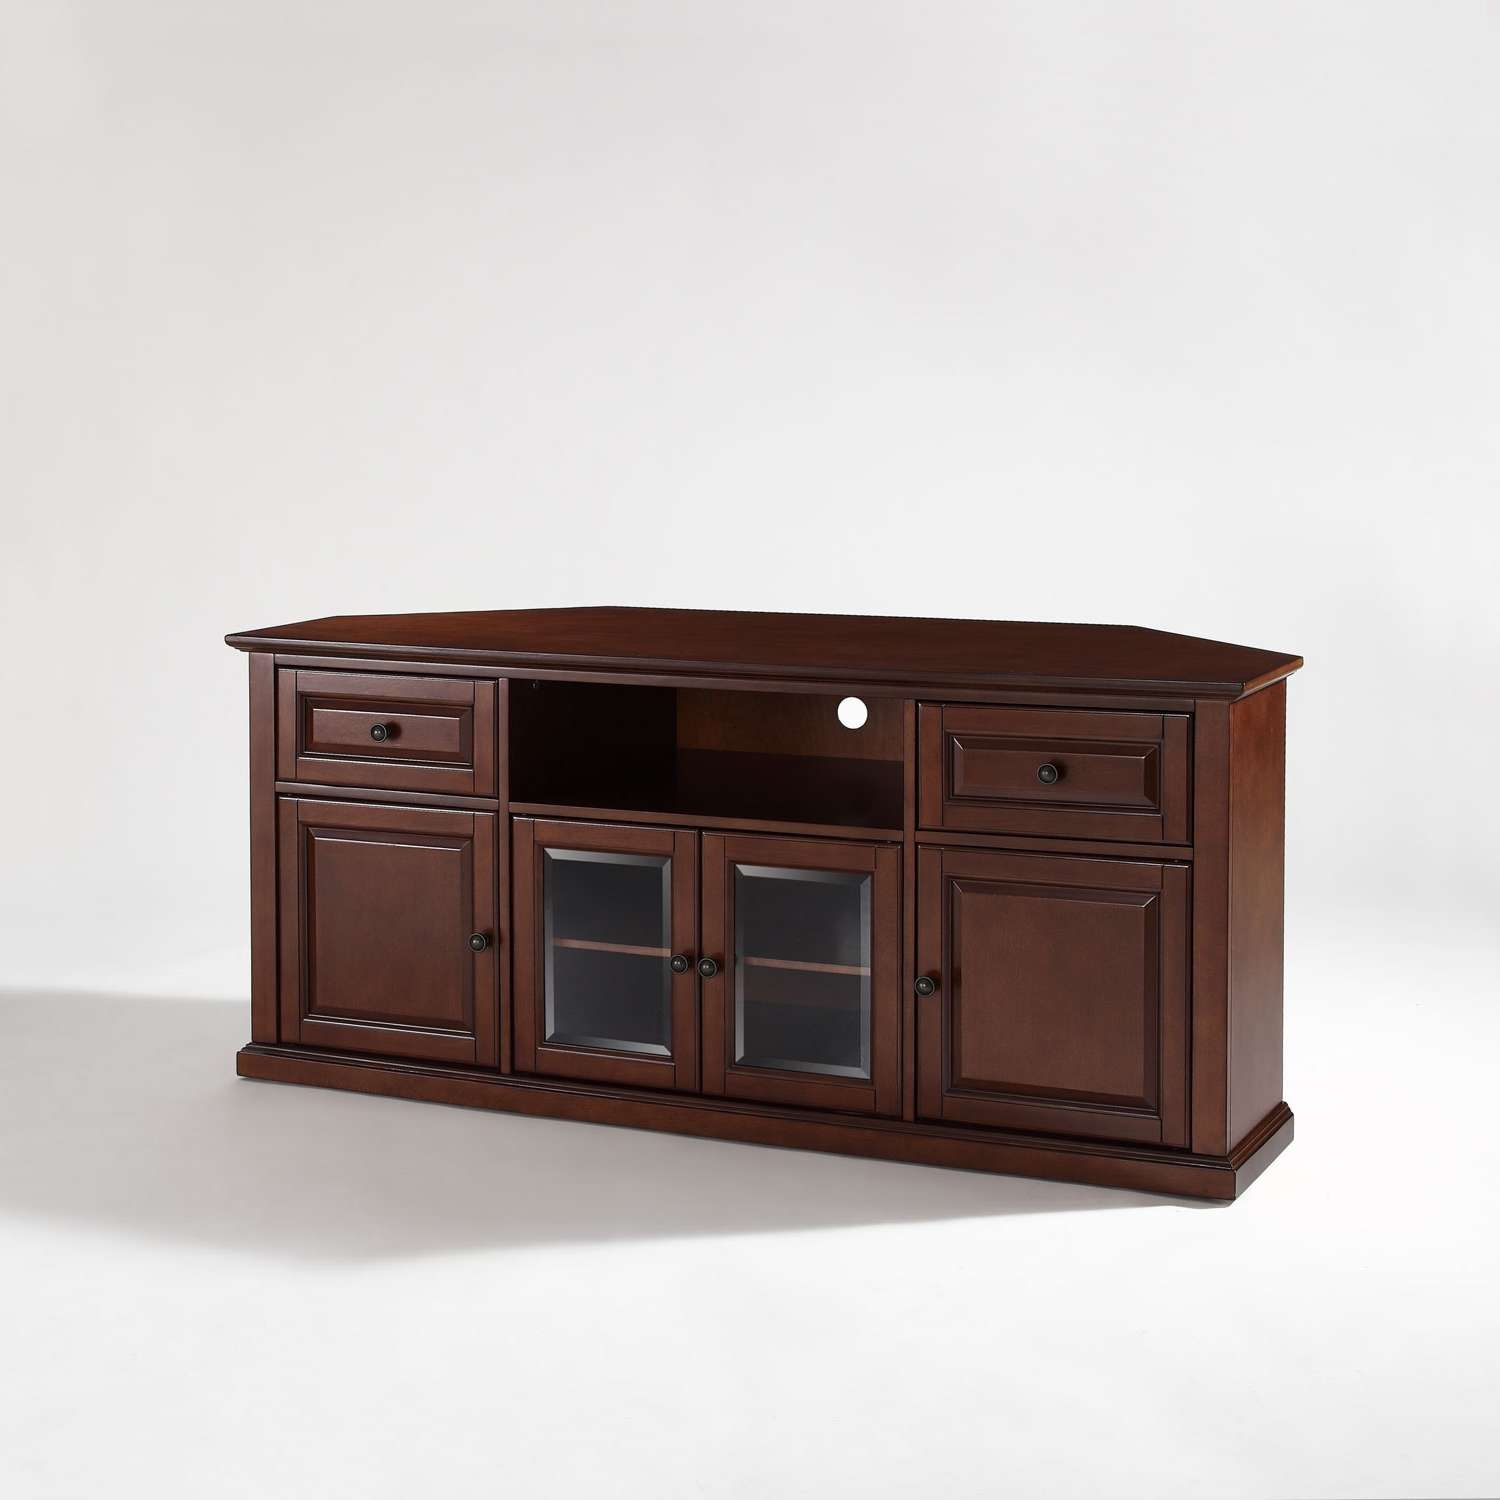 60 Inch Corner Tv Stand In Vintage Mahogany Crosley Furniture In Cornet Tv Stands (View 1 of 15)